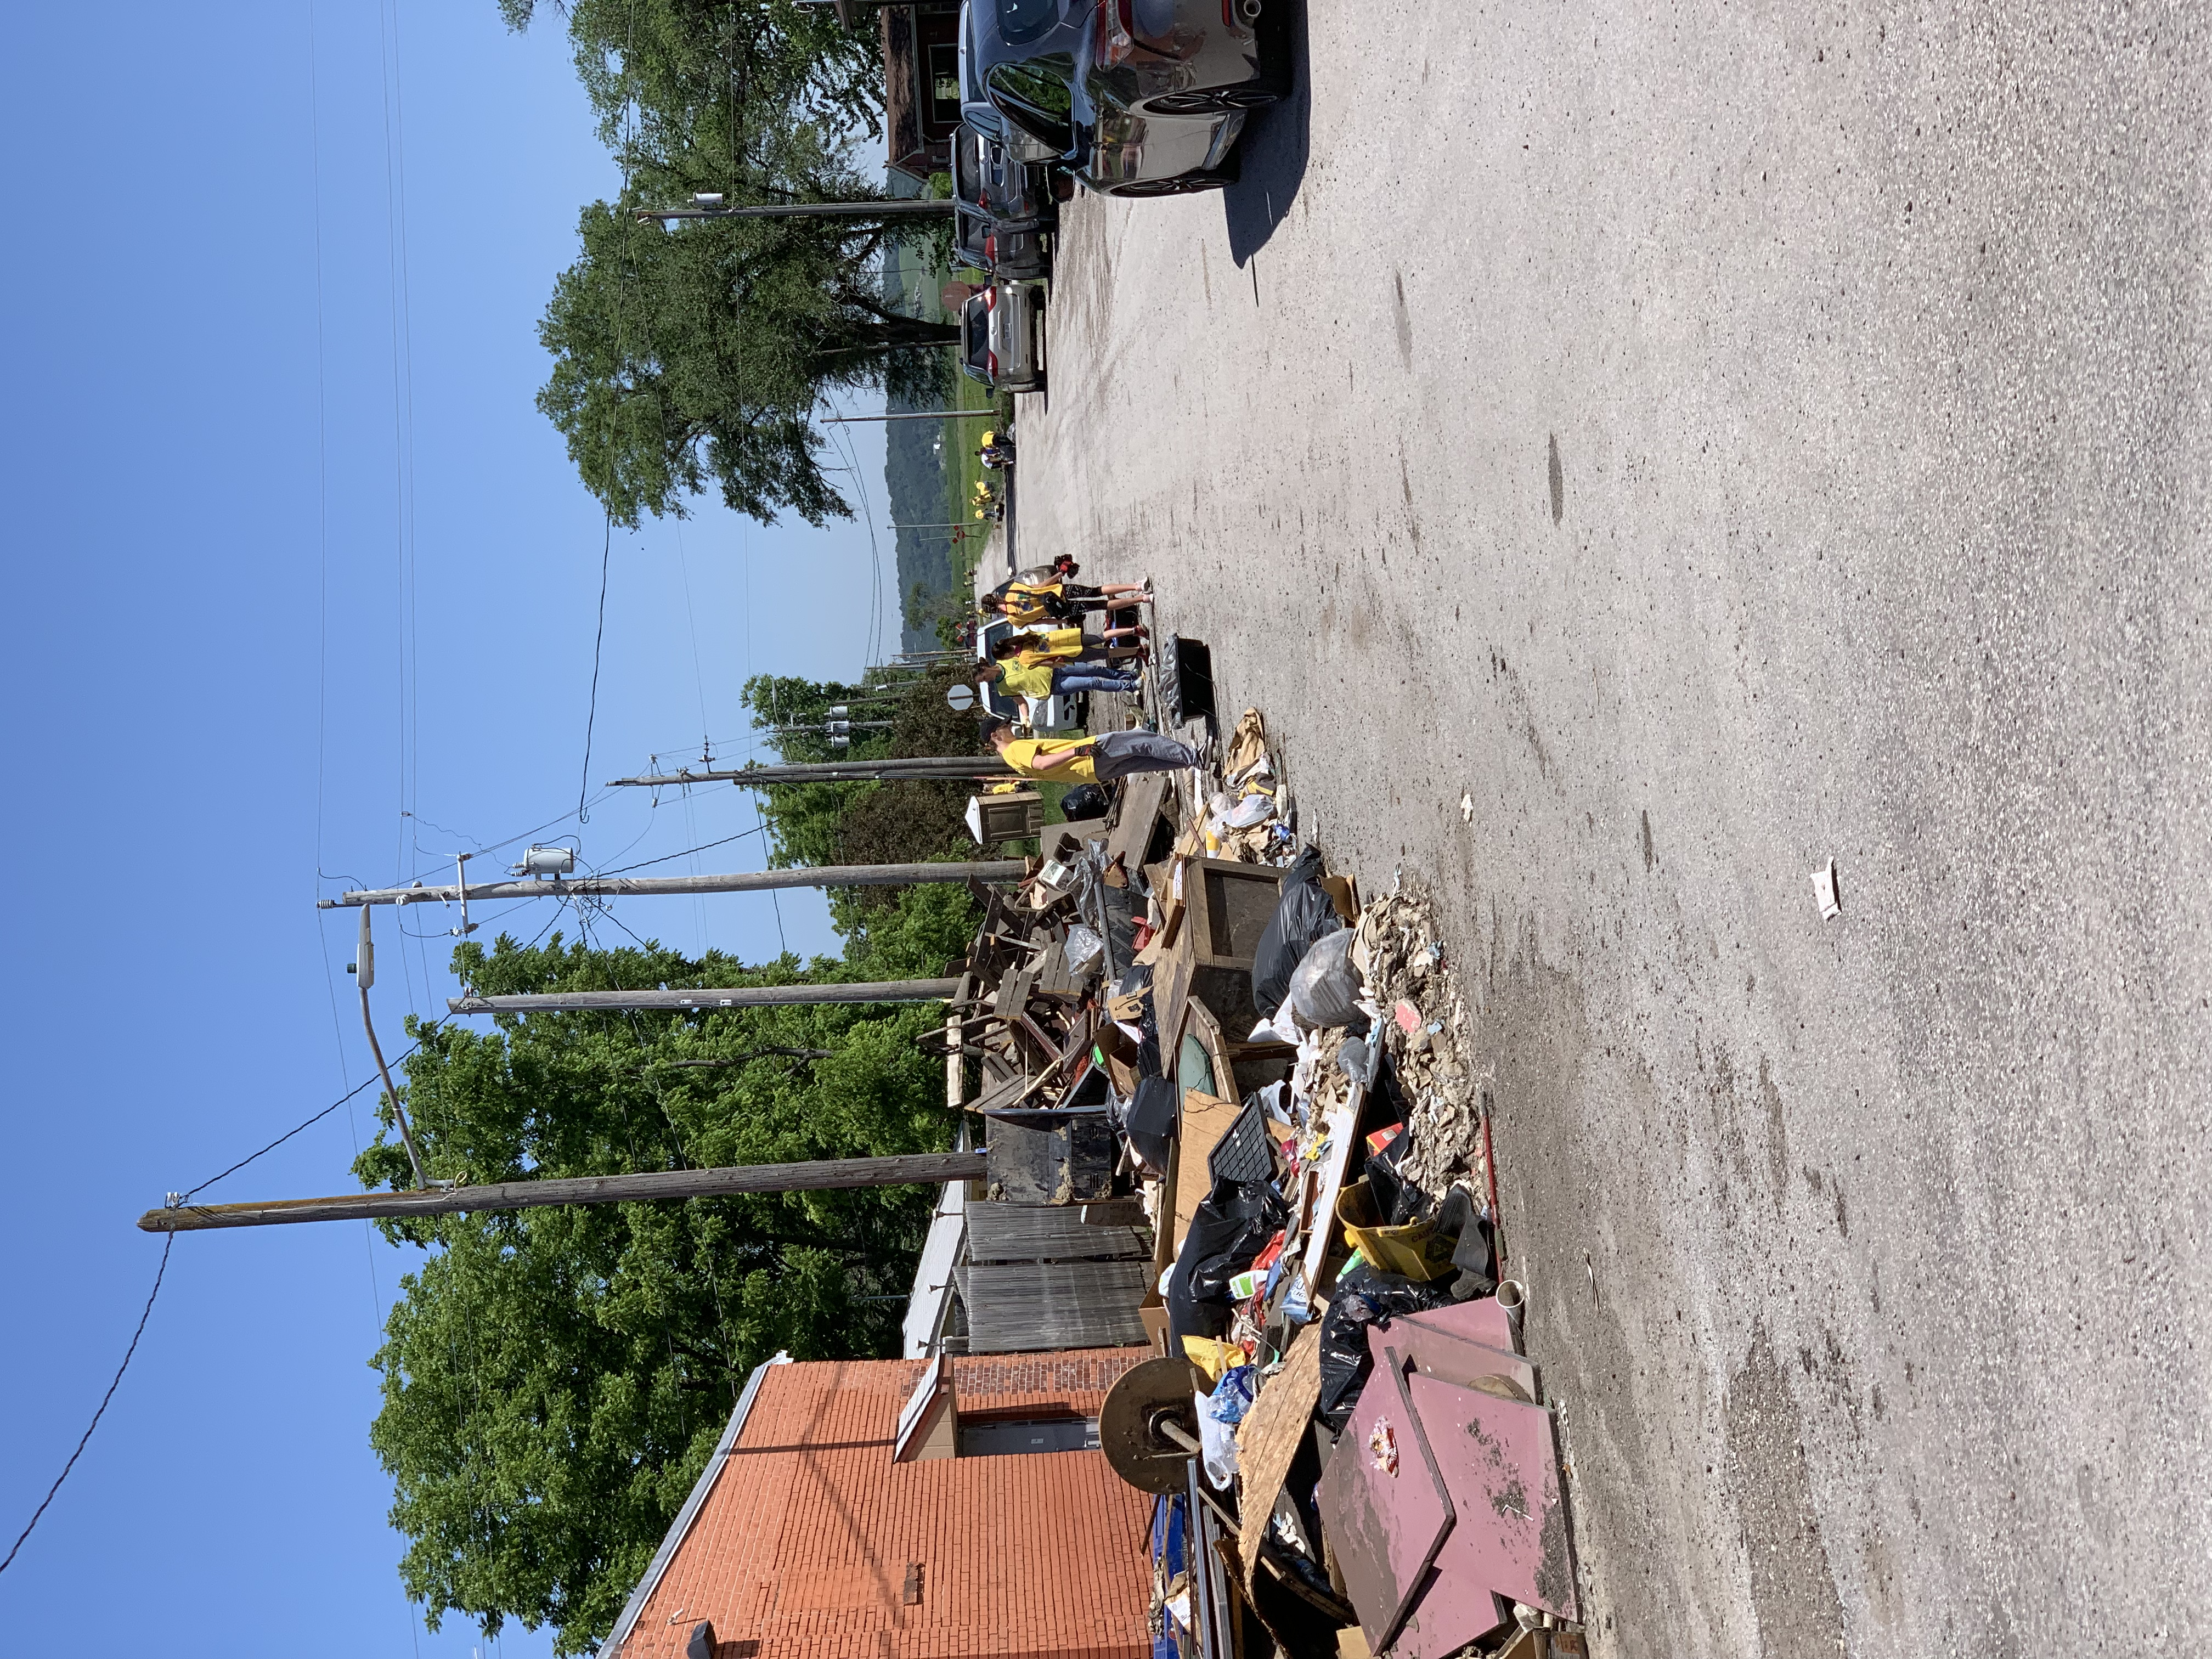 Youth in yellow Helping Hands shirts clear the streets of debris on June 10, 2019. March rainfall and snowmelt left parts of Iowa in as much as 10 feet of water, devastating homes, farmland and roads.